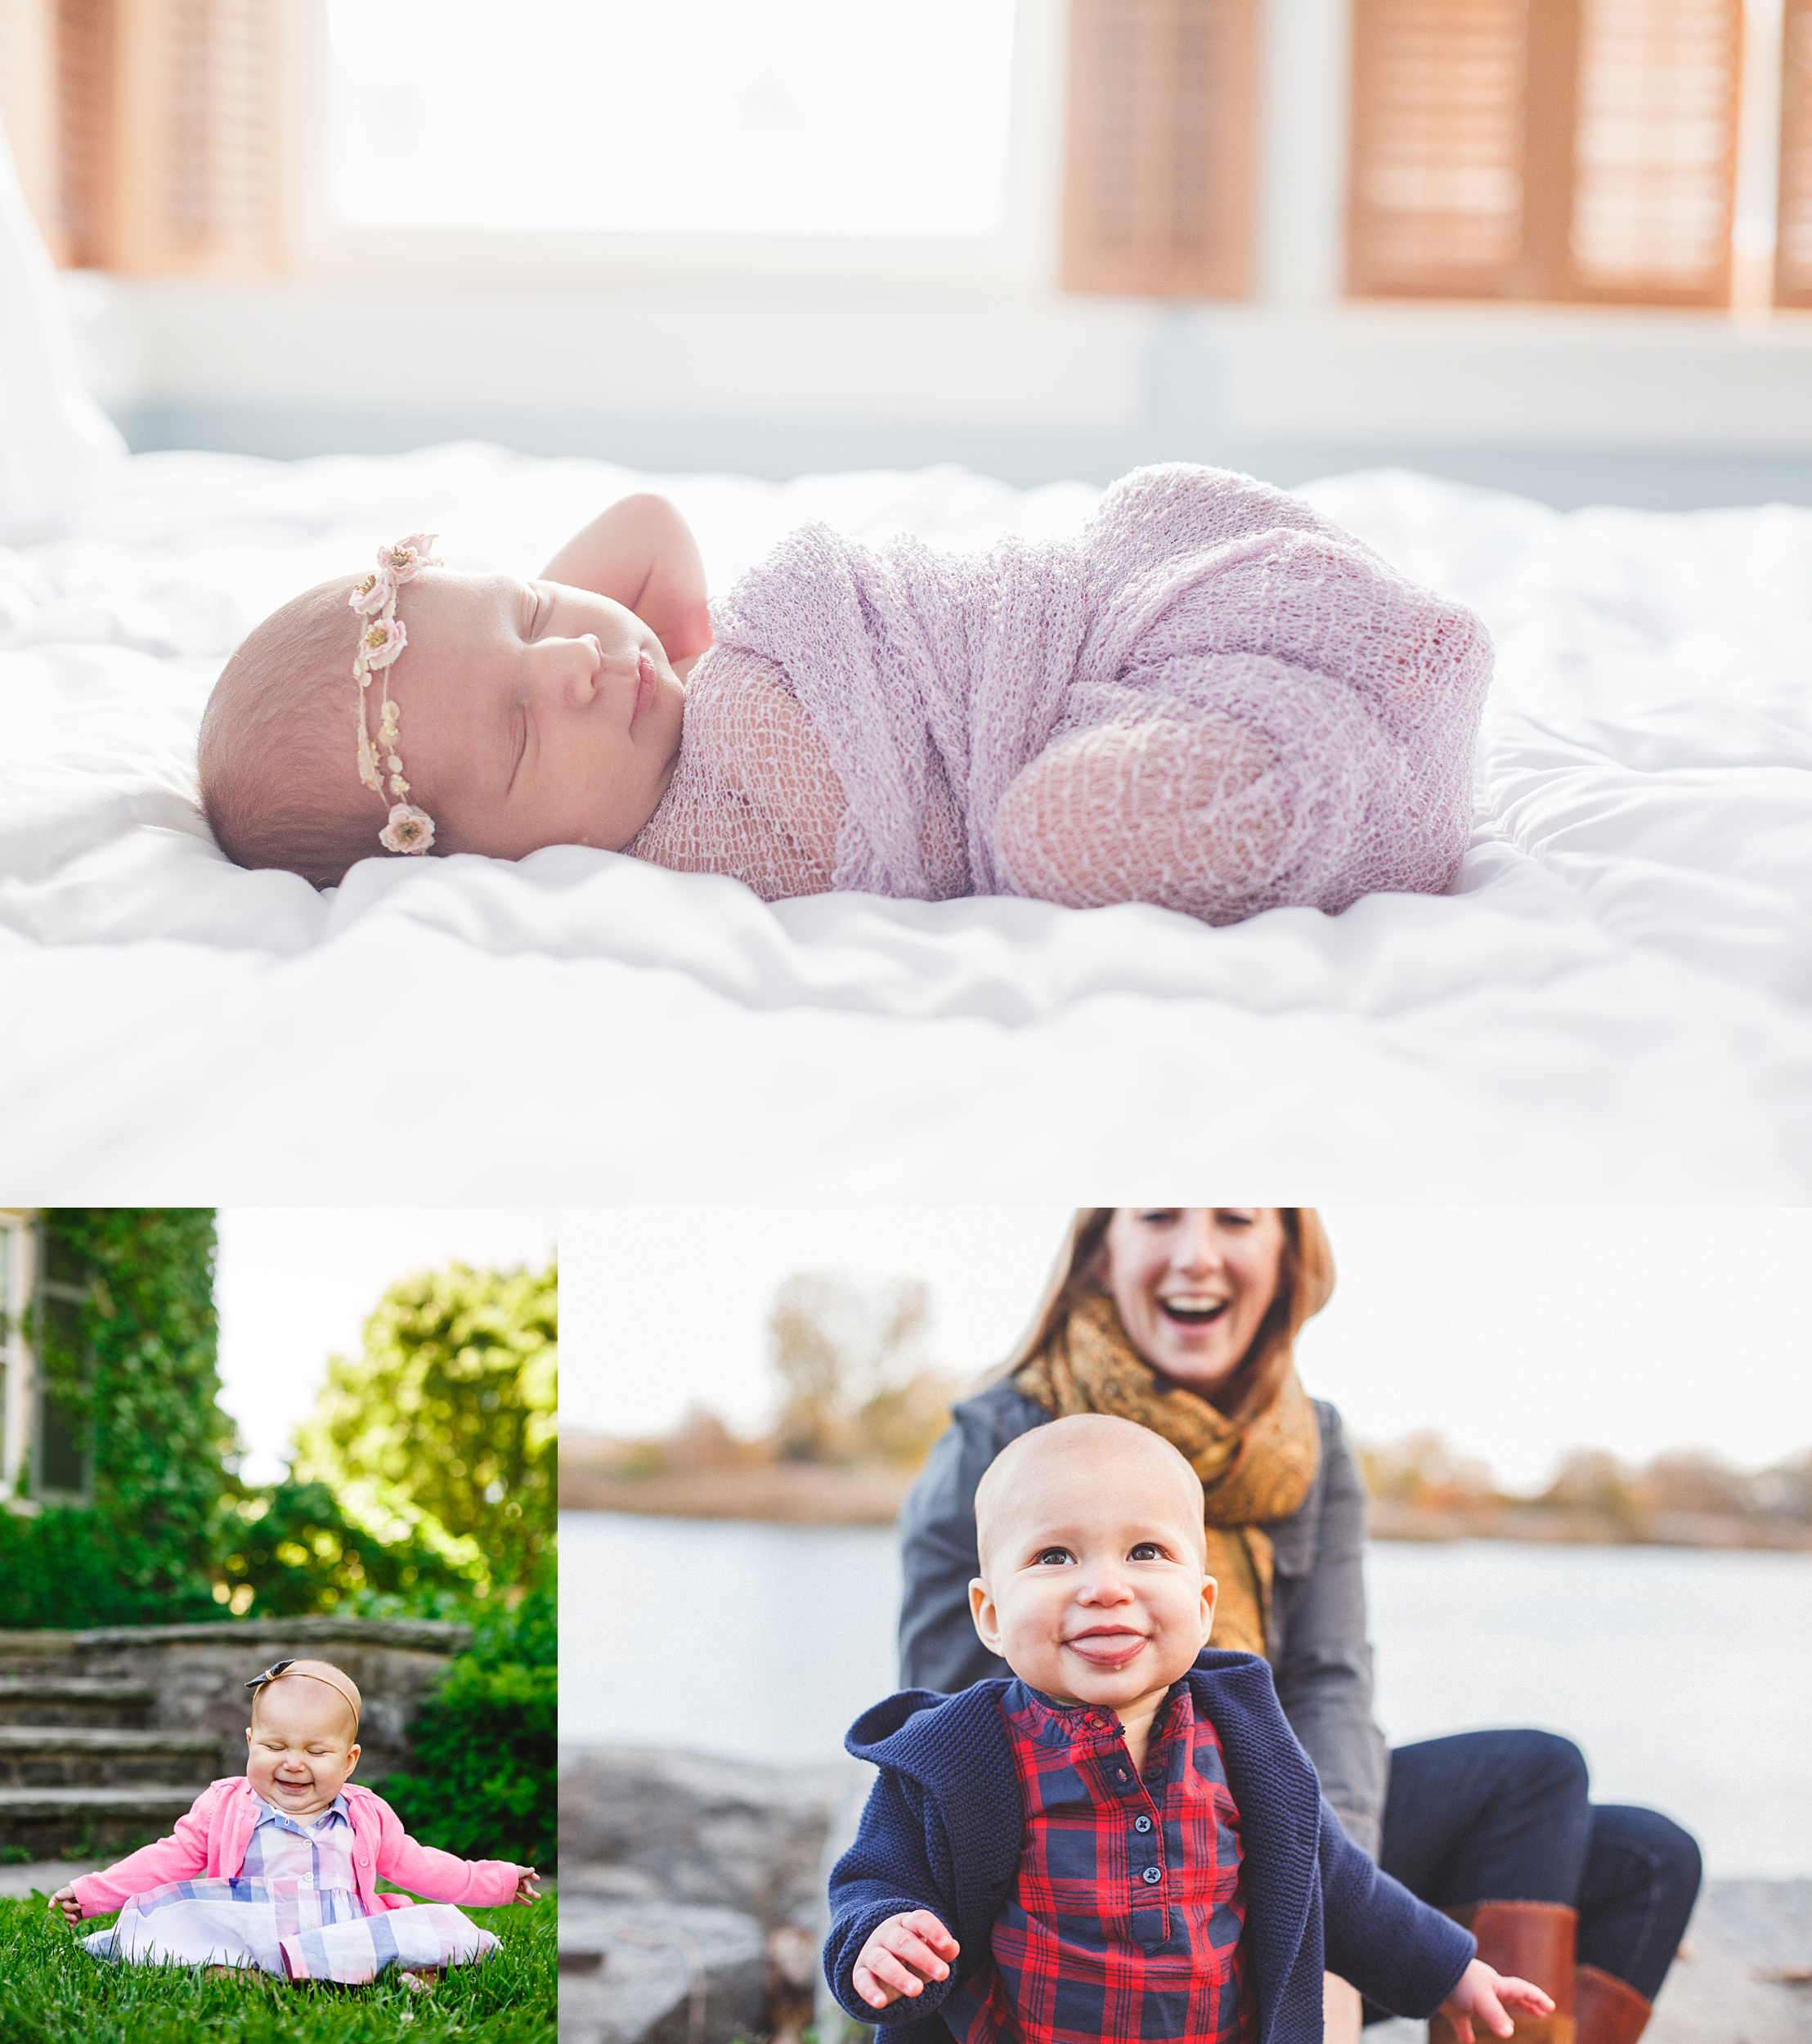 Eliza_Kelly_Kester_Photography_Baby_Plan.jpg